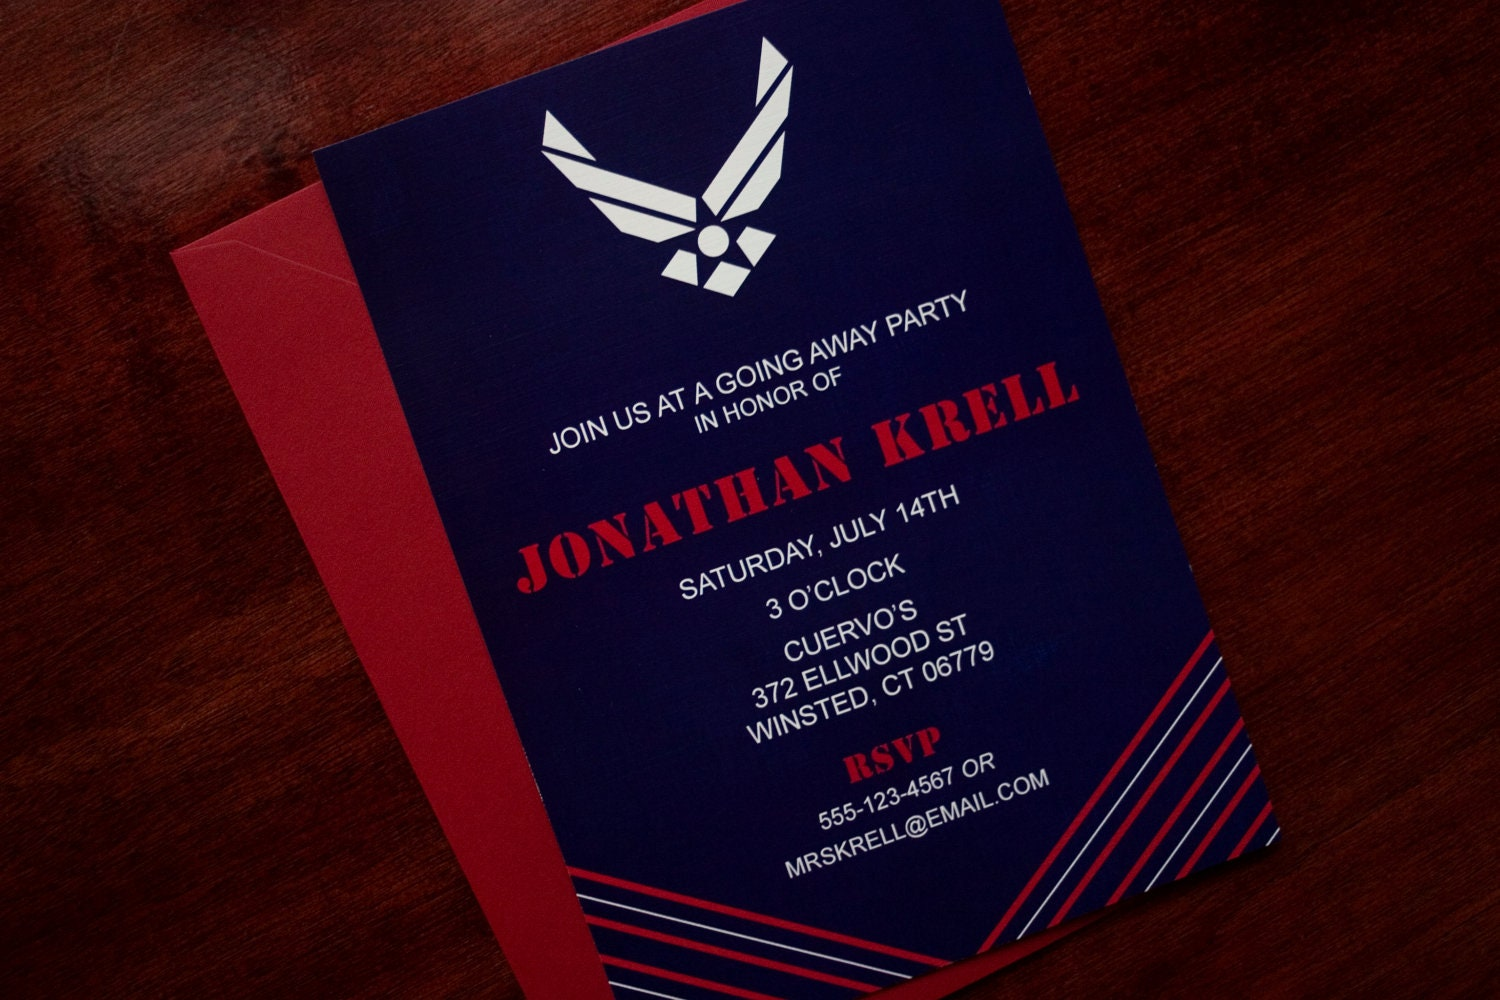 Military Retirement Party Invitations is great invitation ideas